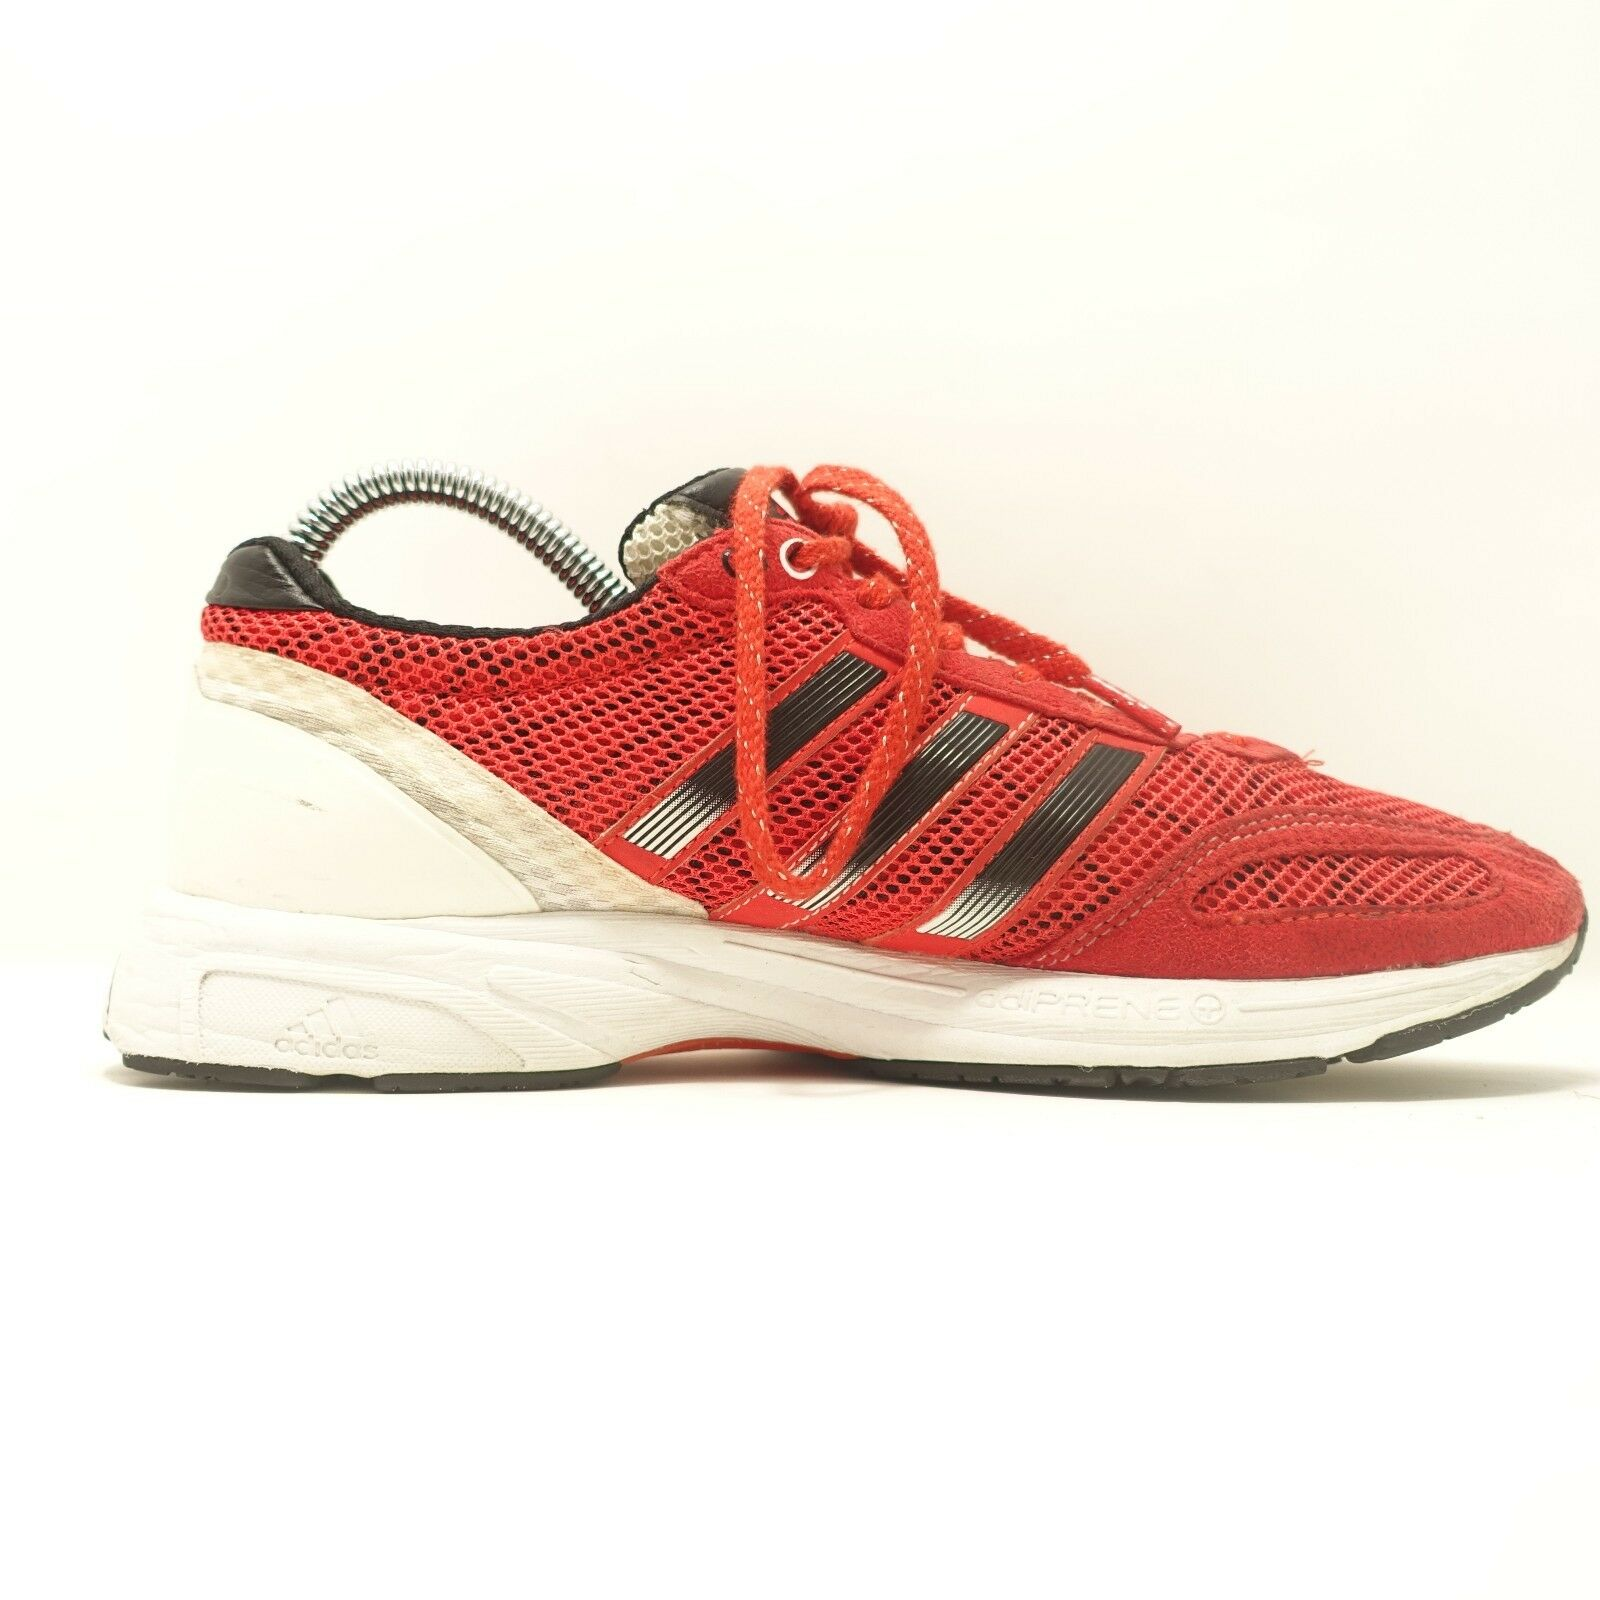 Mens Adizero Adios Running Shoes - Adidas Comfortable The most popular shoes for men and women